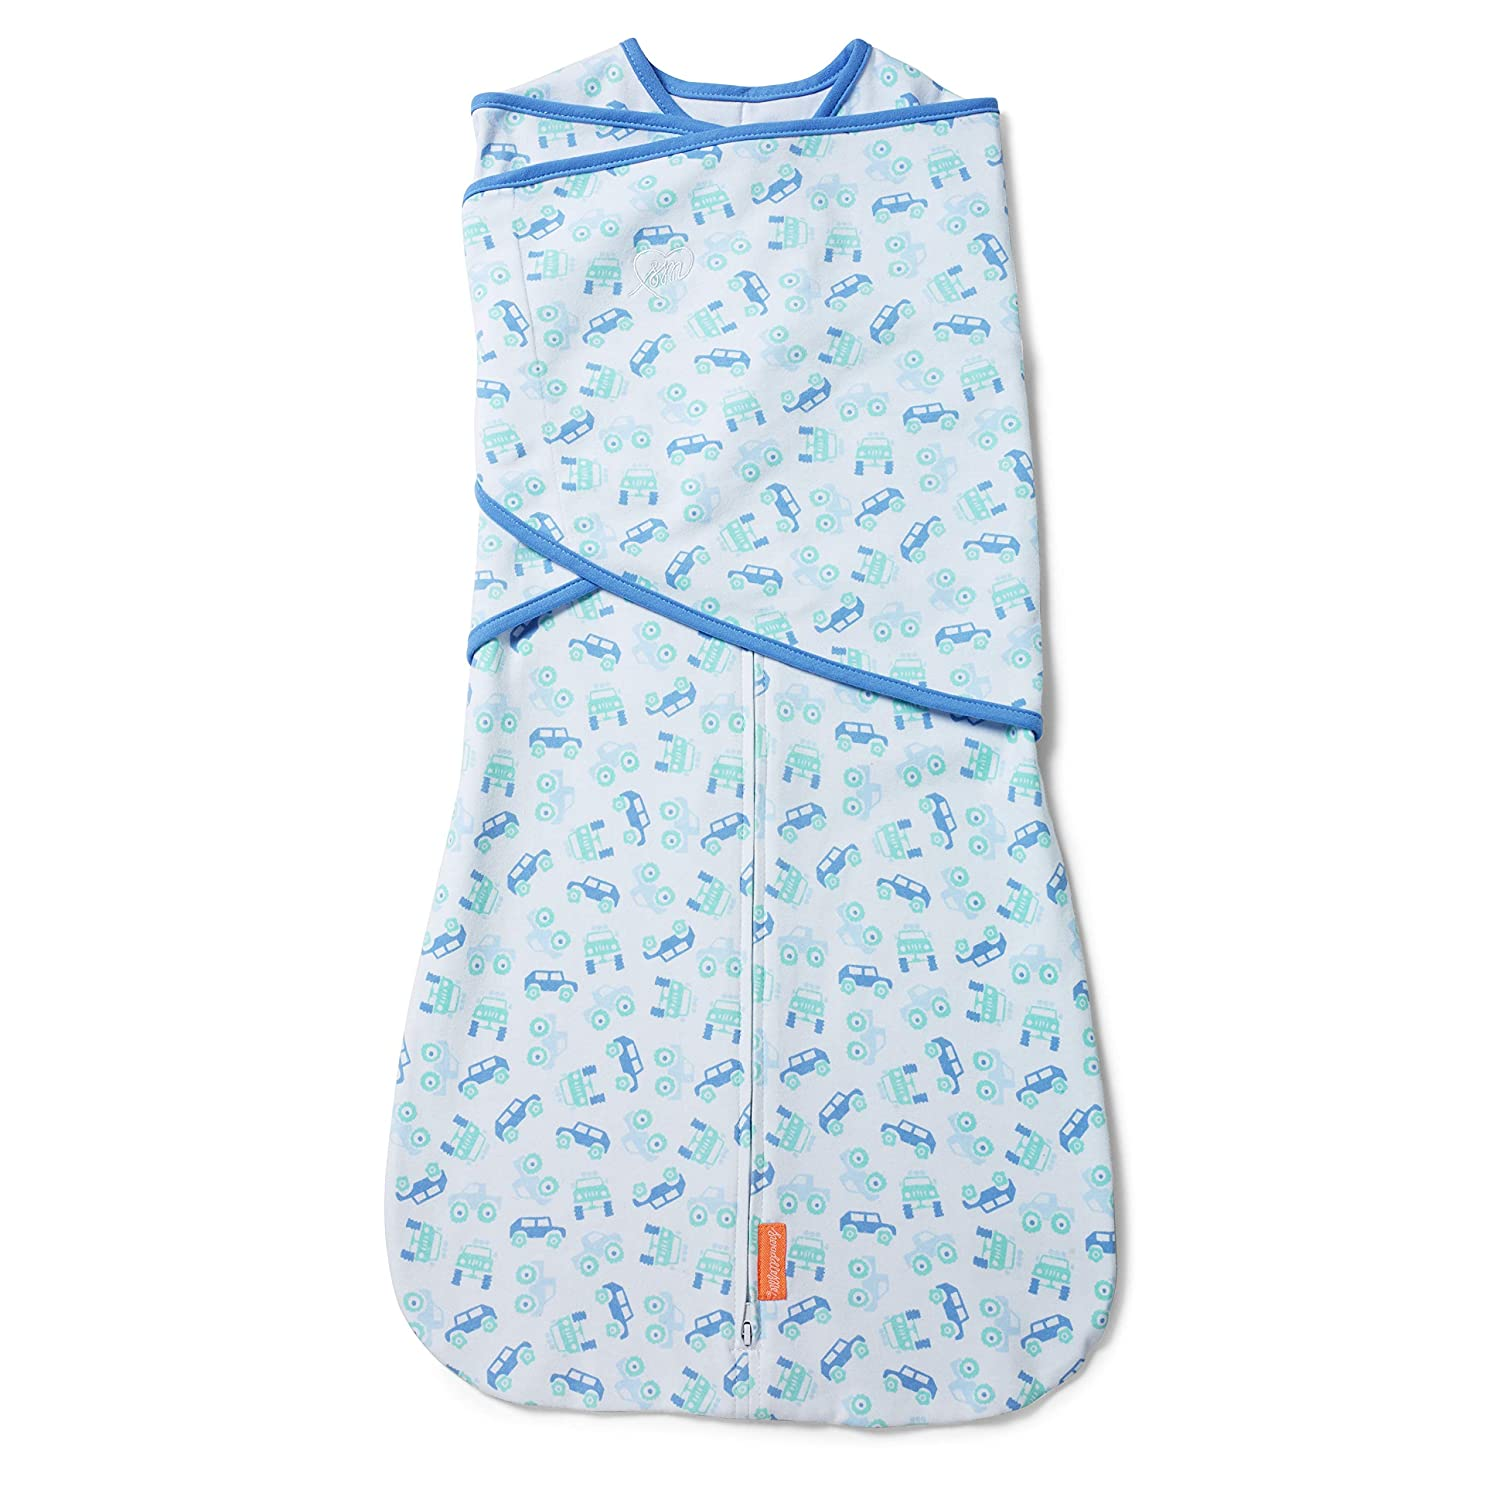 SwaddleMe Arms Free Convertible Swaddle - 1 Pack, Lil Off Roader, 6-9 Months